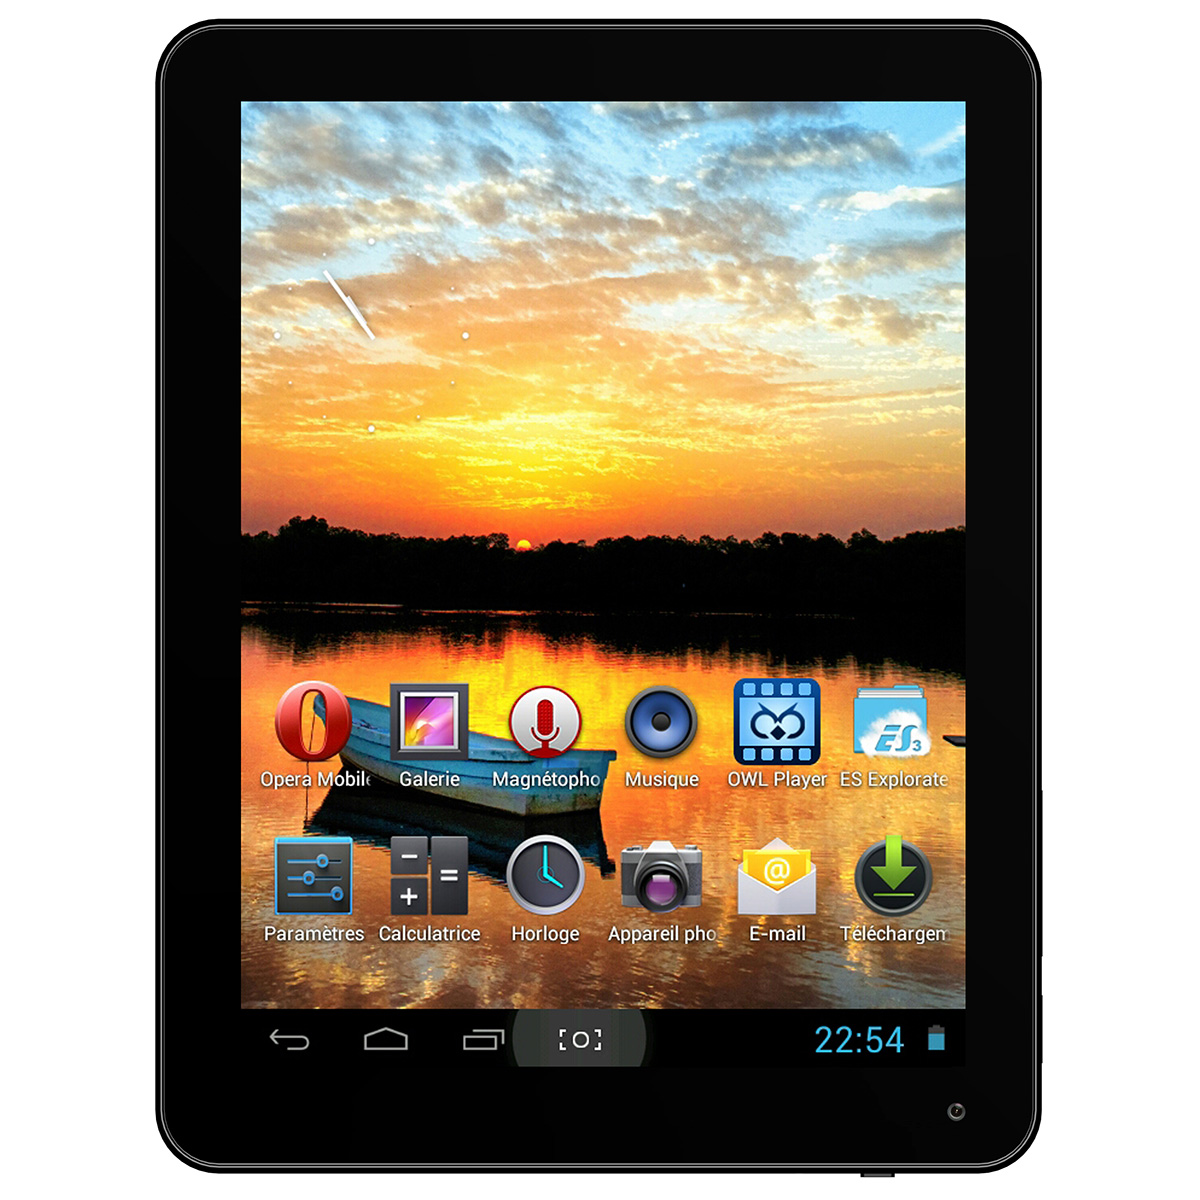 """Tablette tactile MPMAN MPDC88 BT IPS 8 Go Tablette Internet - ARM Cortex-A9 1,6 GHz 1 Go 8 Go 8"""" LCD tactile Wi-Fi N/Bluetooth 4.0/ Webcam Android 4.1"""